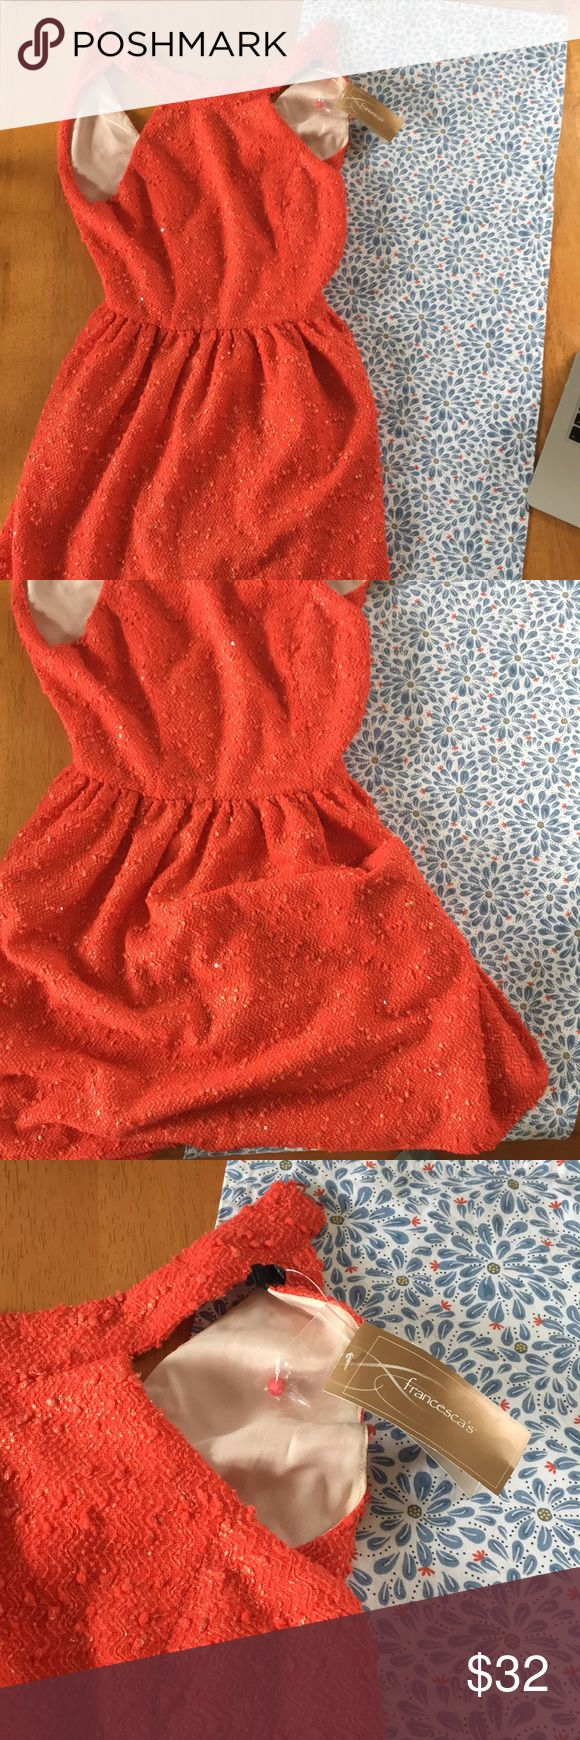 NWT Orange Semi-Formal Dress Sparkly orange dress with wavy golden pattern. Falls just above the knee, harness top that buttons in the back. Very cute! Too big on me though. Bought from Francesca's.  Bundle and save on shipping! Offers encouraged! Francesca's Collections Dresses